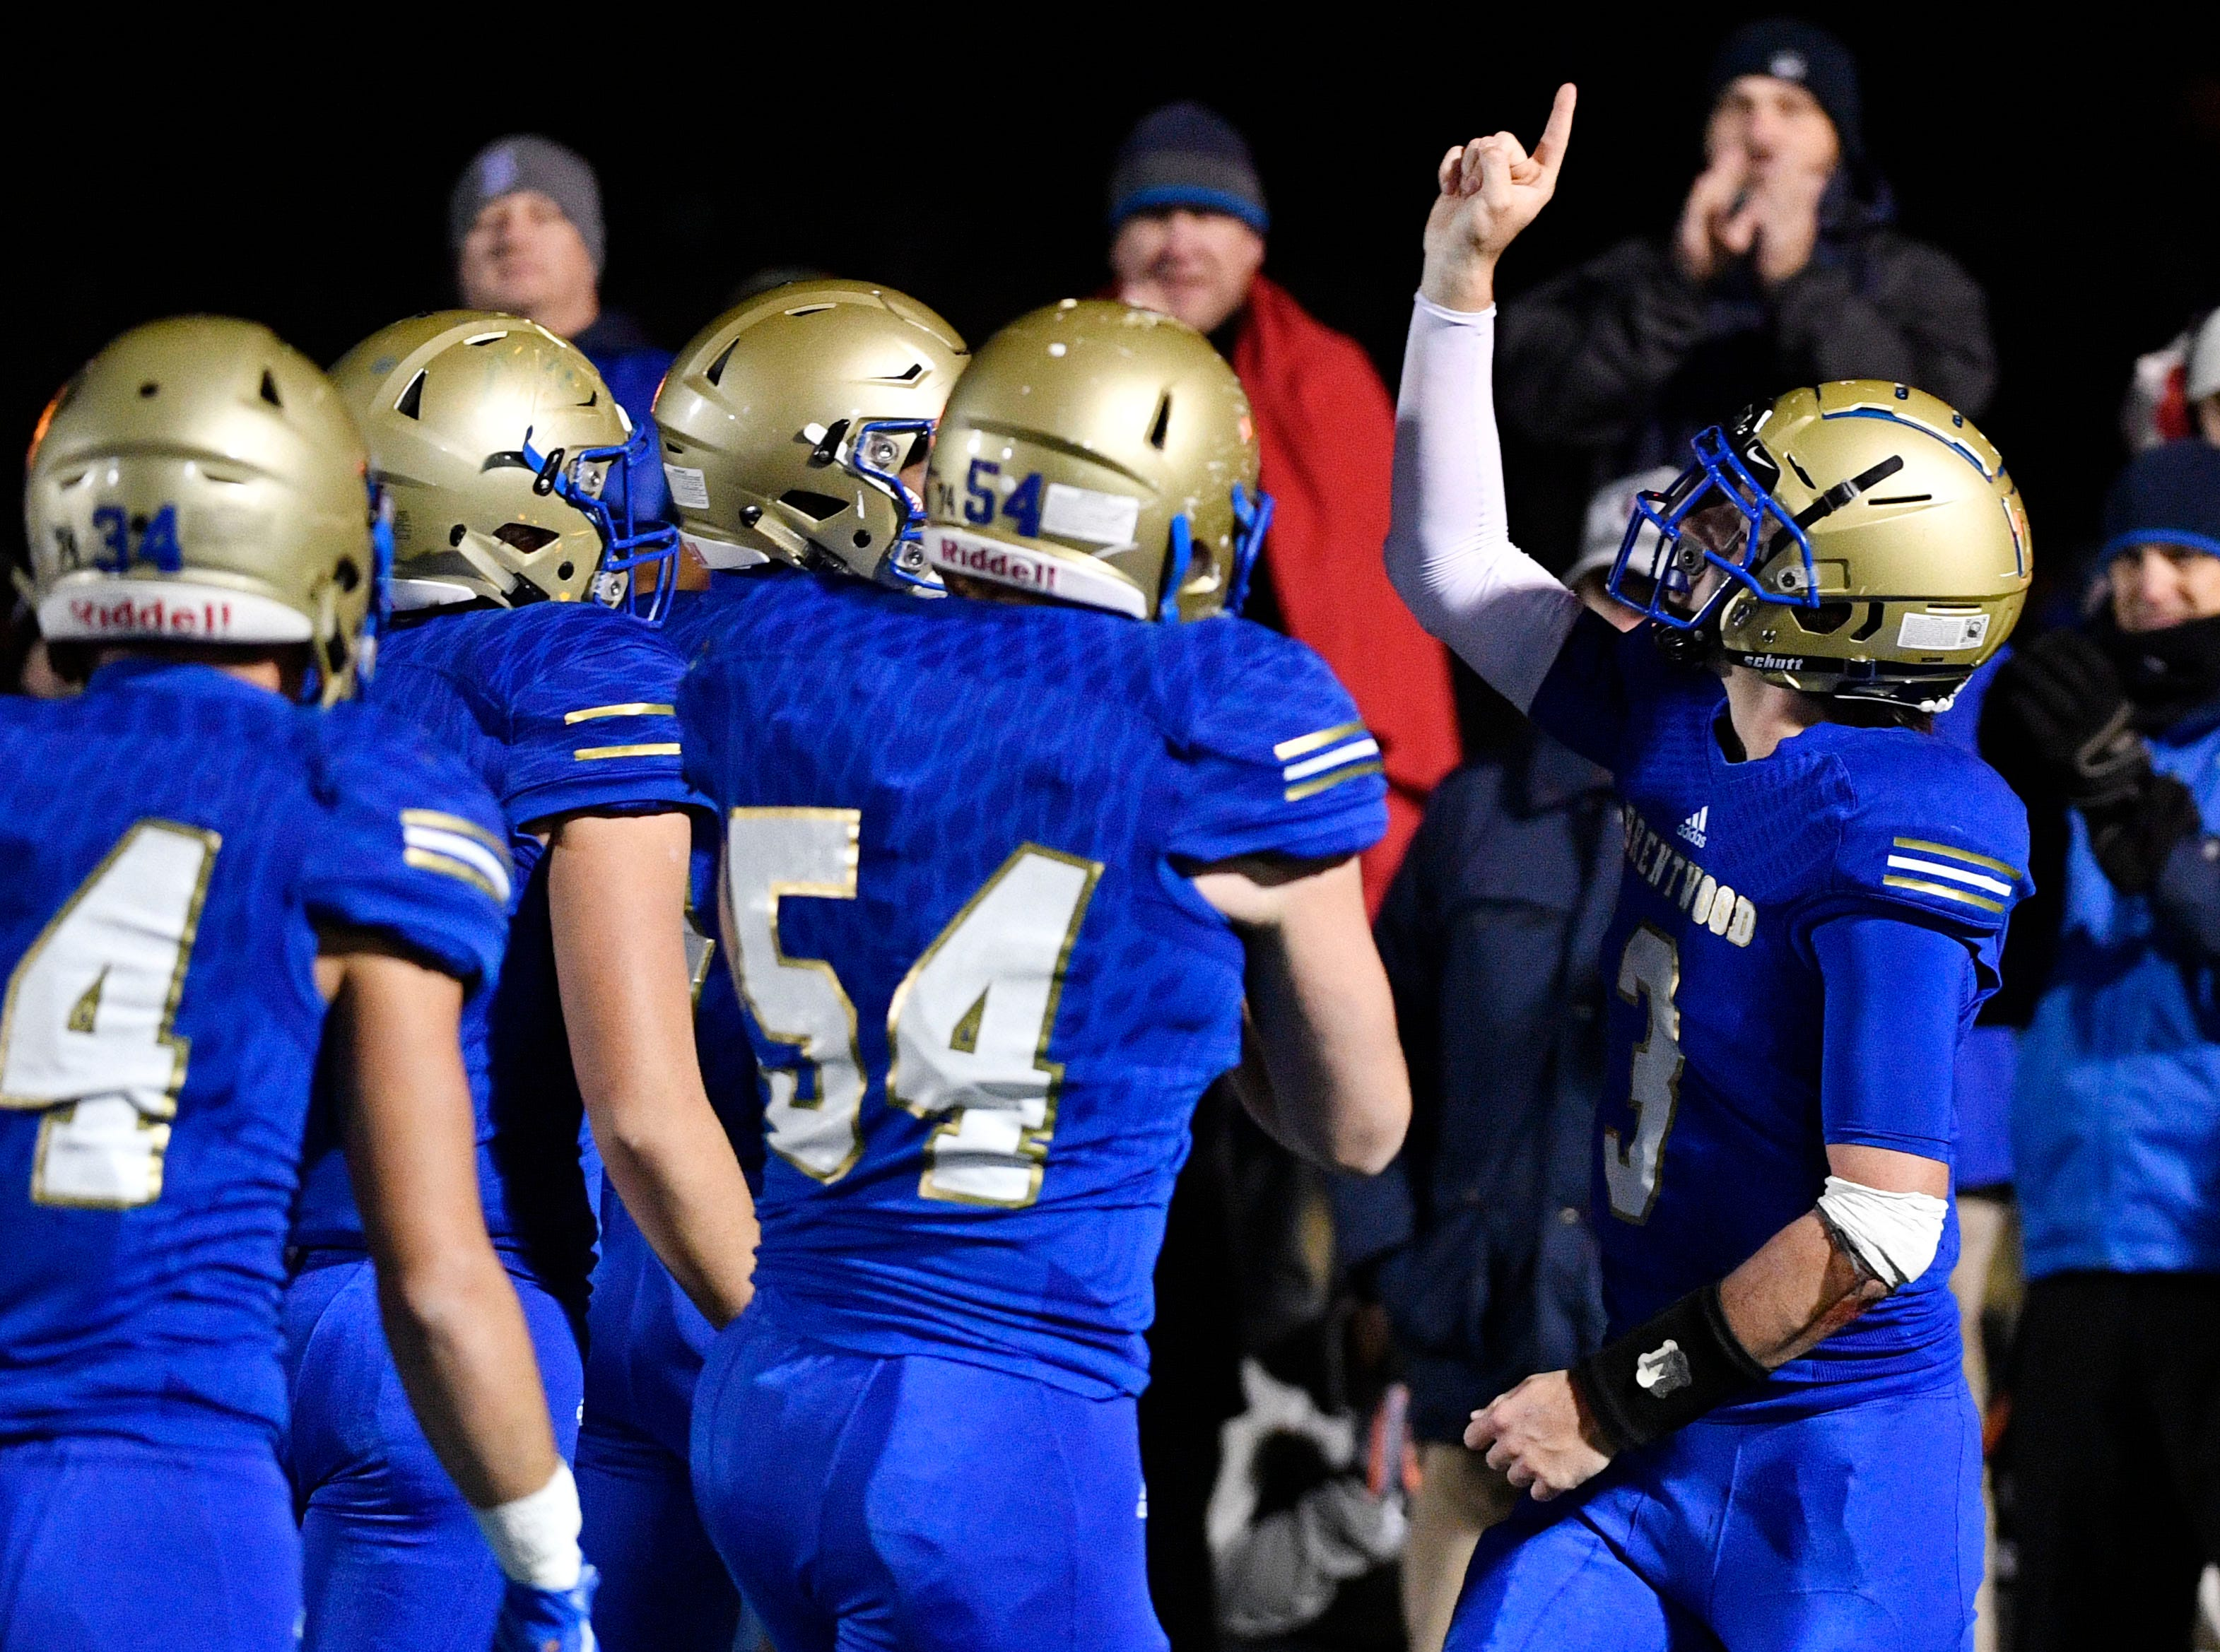 24. Brentwood (10-2) beat Independence, 27-24.